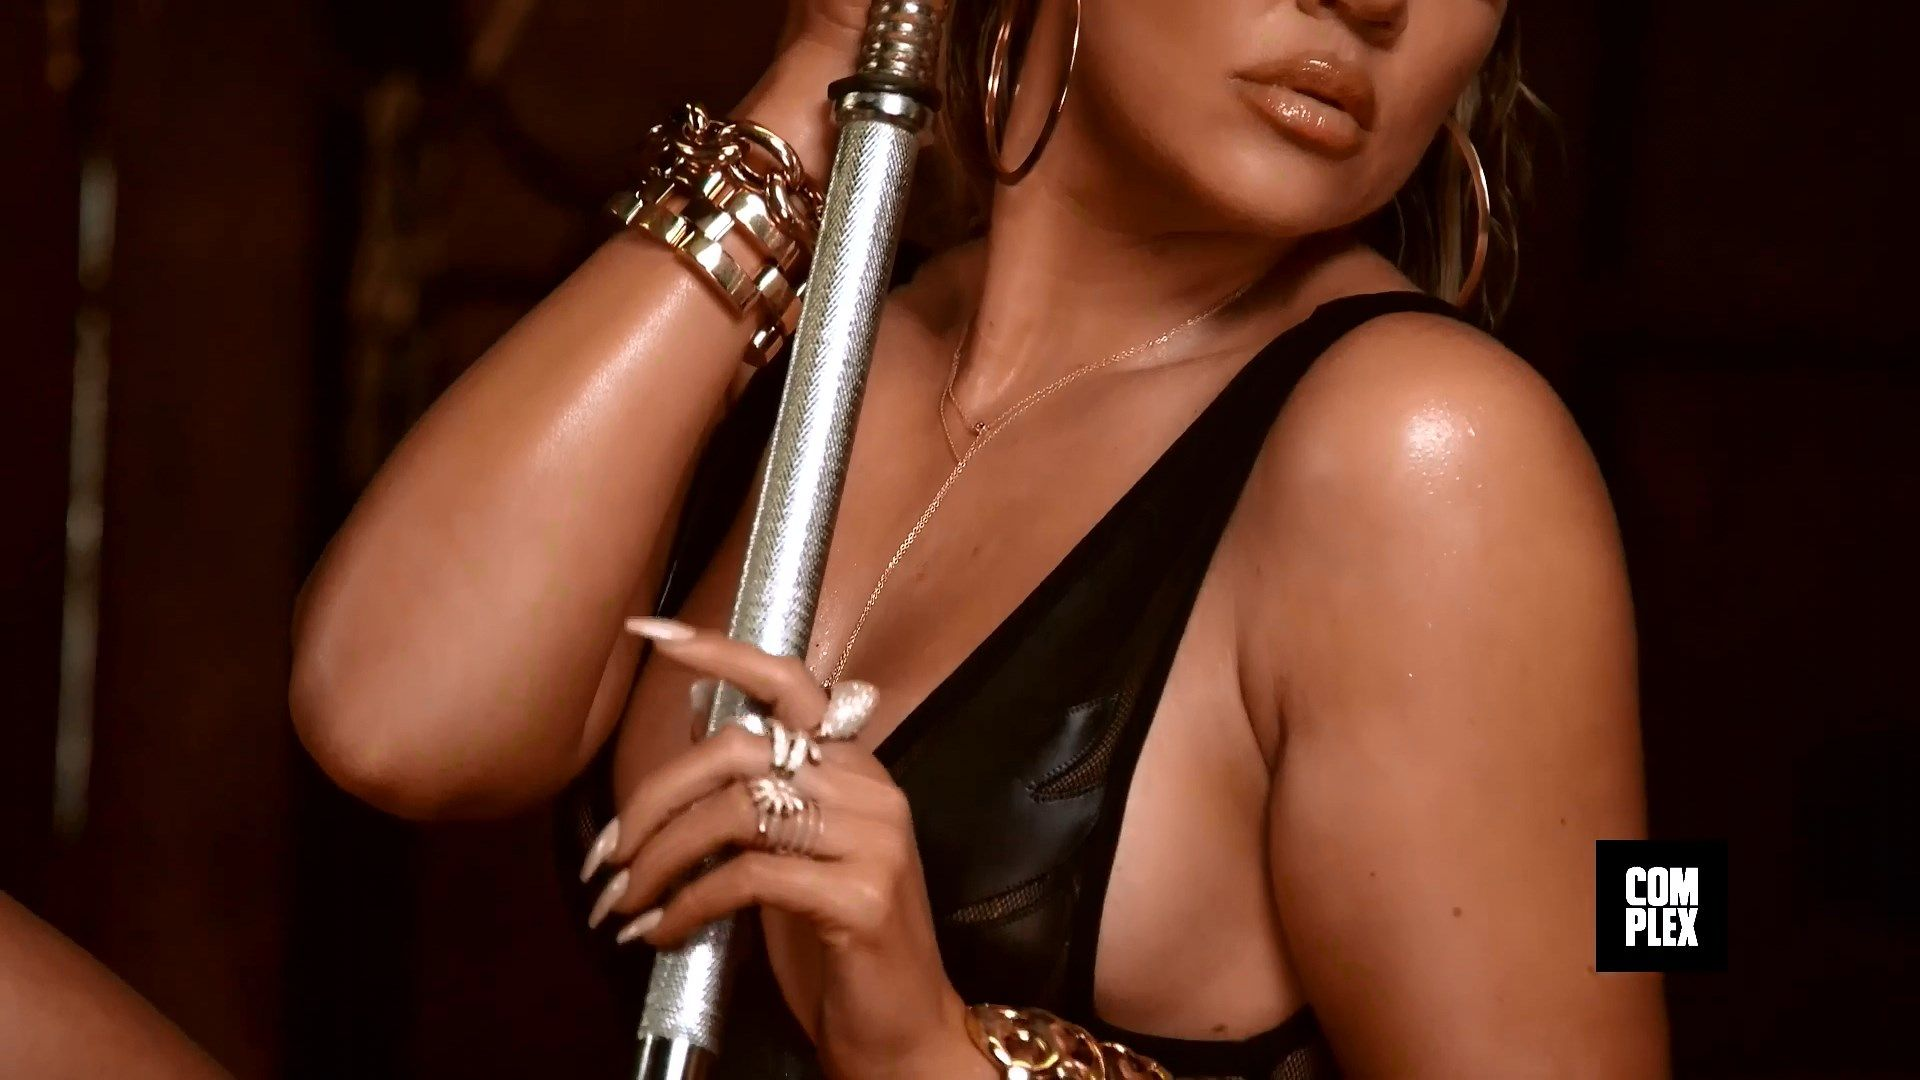 From this khloe kardashian nude and sexy thanks